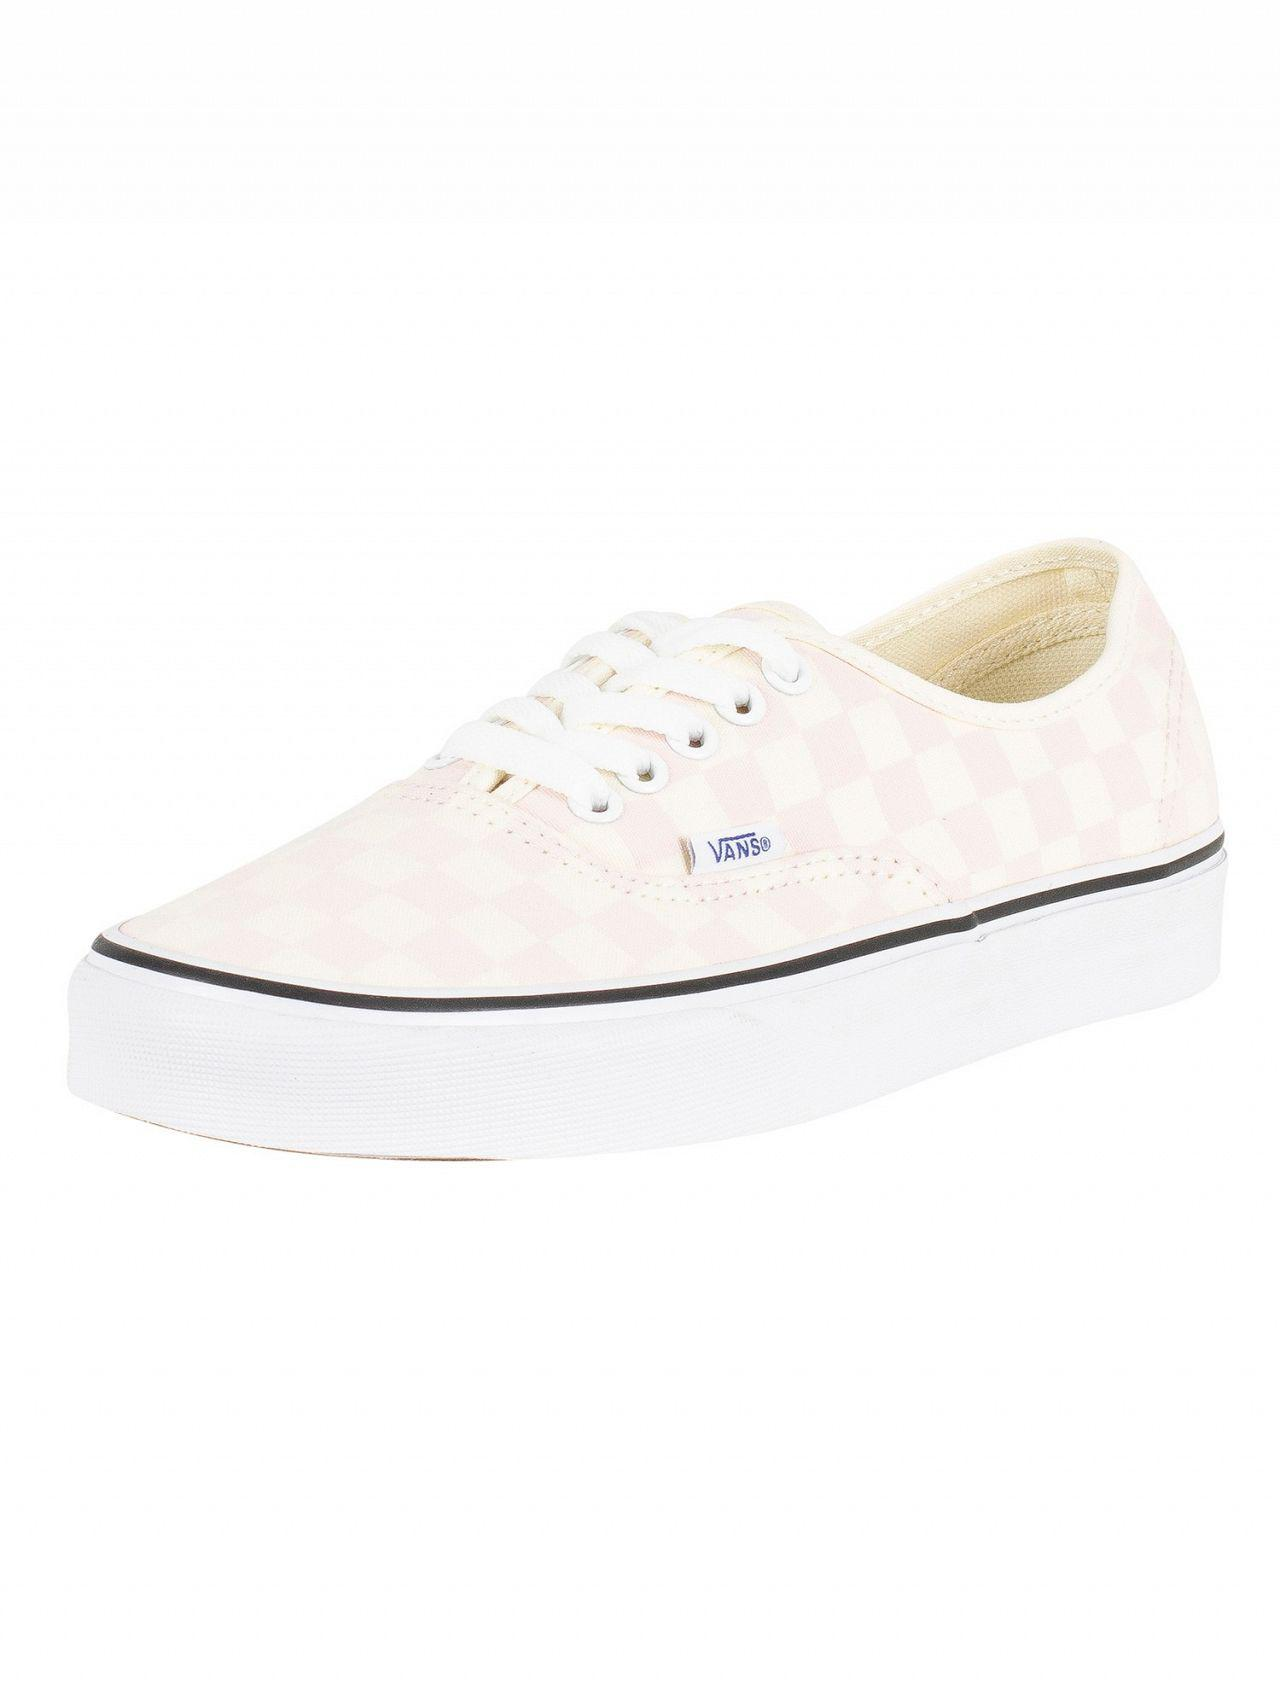 5b7dc33b28d8 Vans - White Chalk Pink Authentic Checkerboard Trainers for Men - Lyst.  View fullscreen